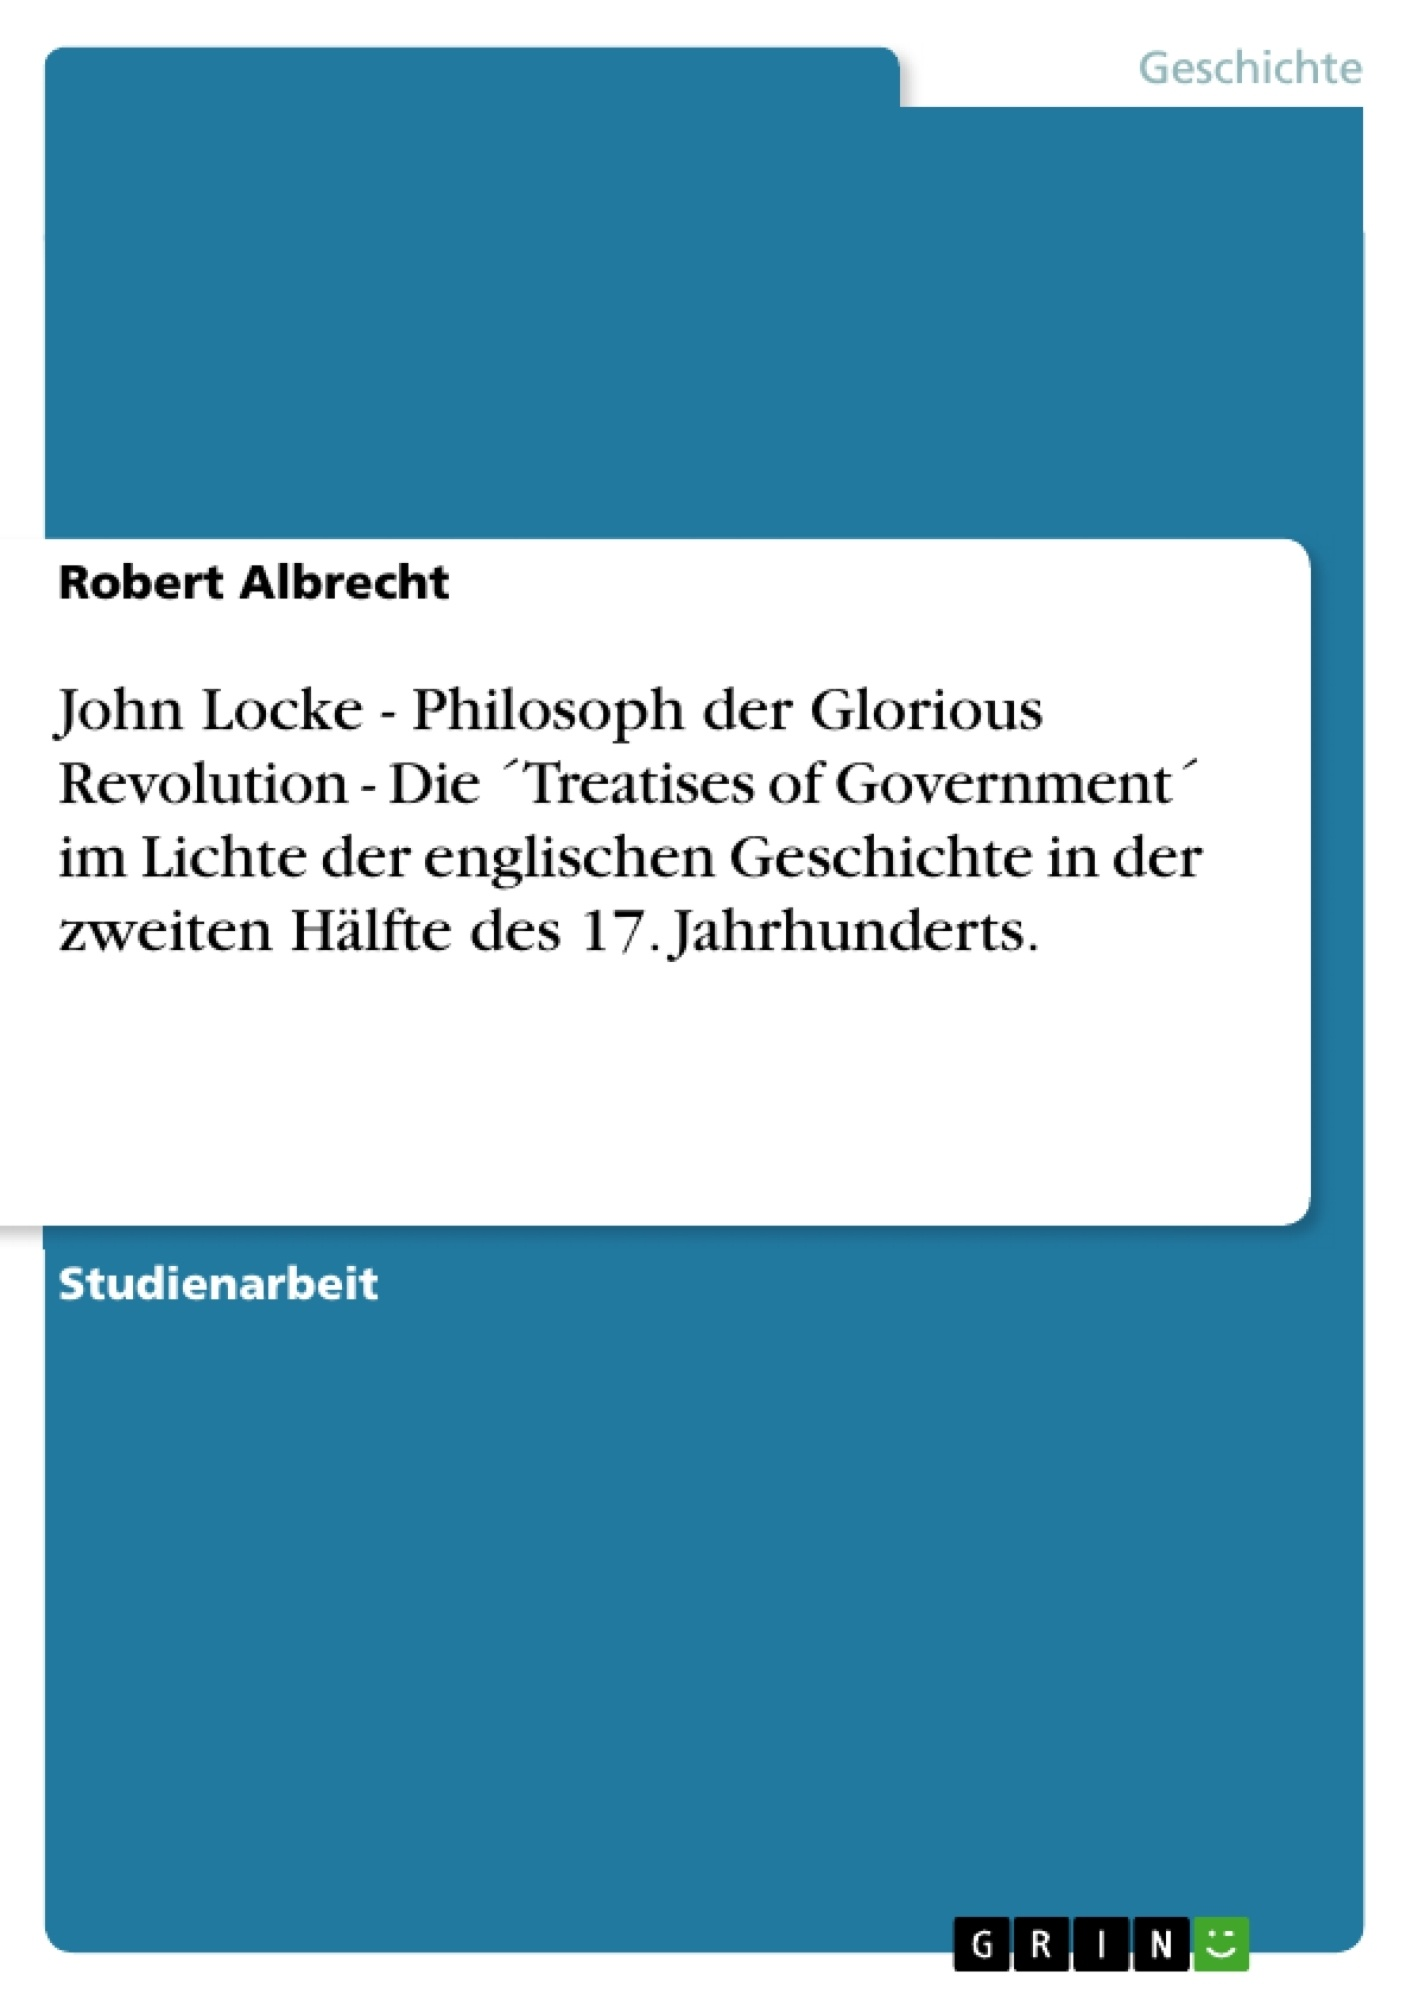 Titel: John Locke - Philosoph der Glorious Revolution - Die ´Treatises of Government´ im Lichte der englischen Geschichte in der zweiten Hälfte des 17. Jahrhunderts.